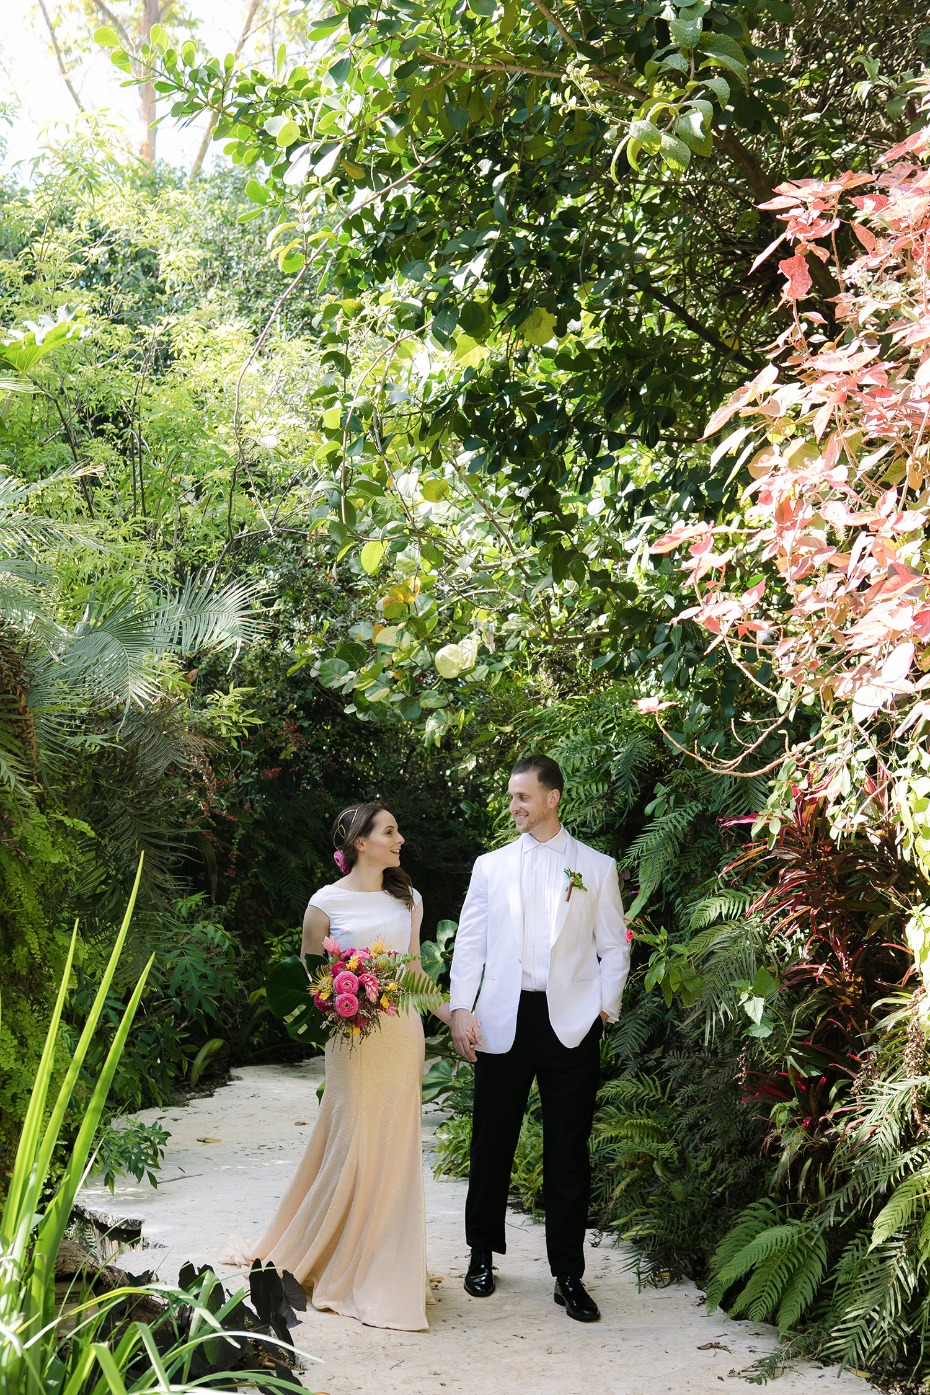 taking a tropical wedding walk